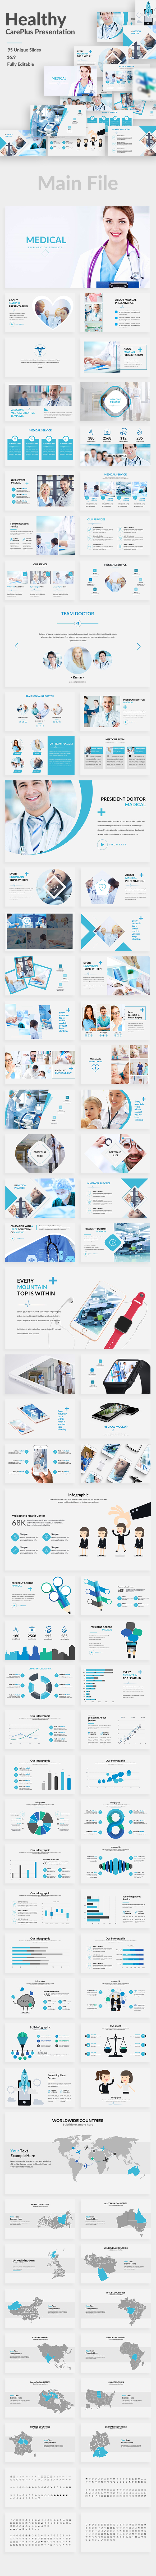 Health CarePlus Google Slide Template - Google Slides Presentation Templates